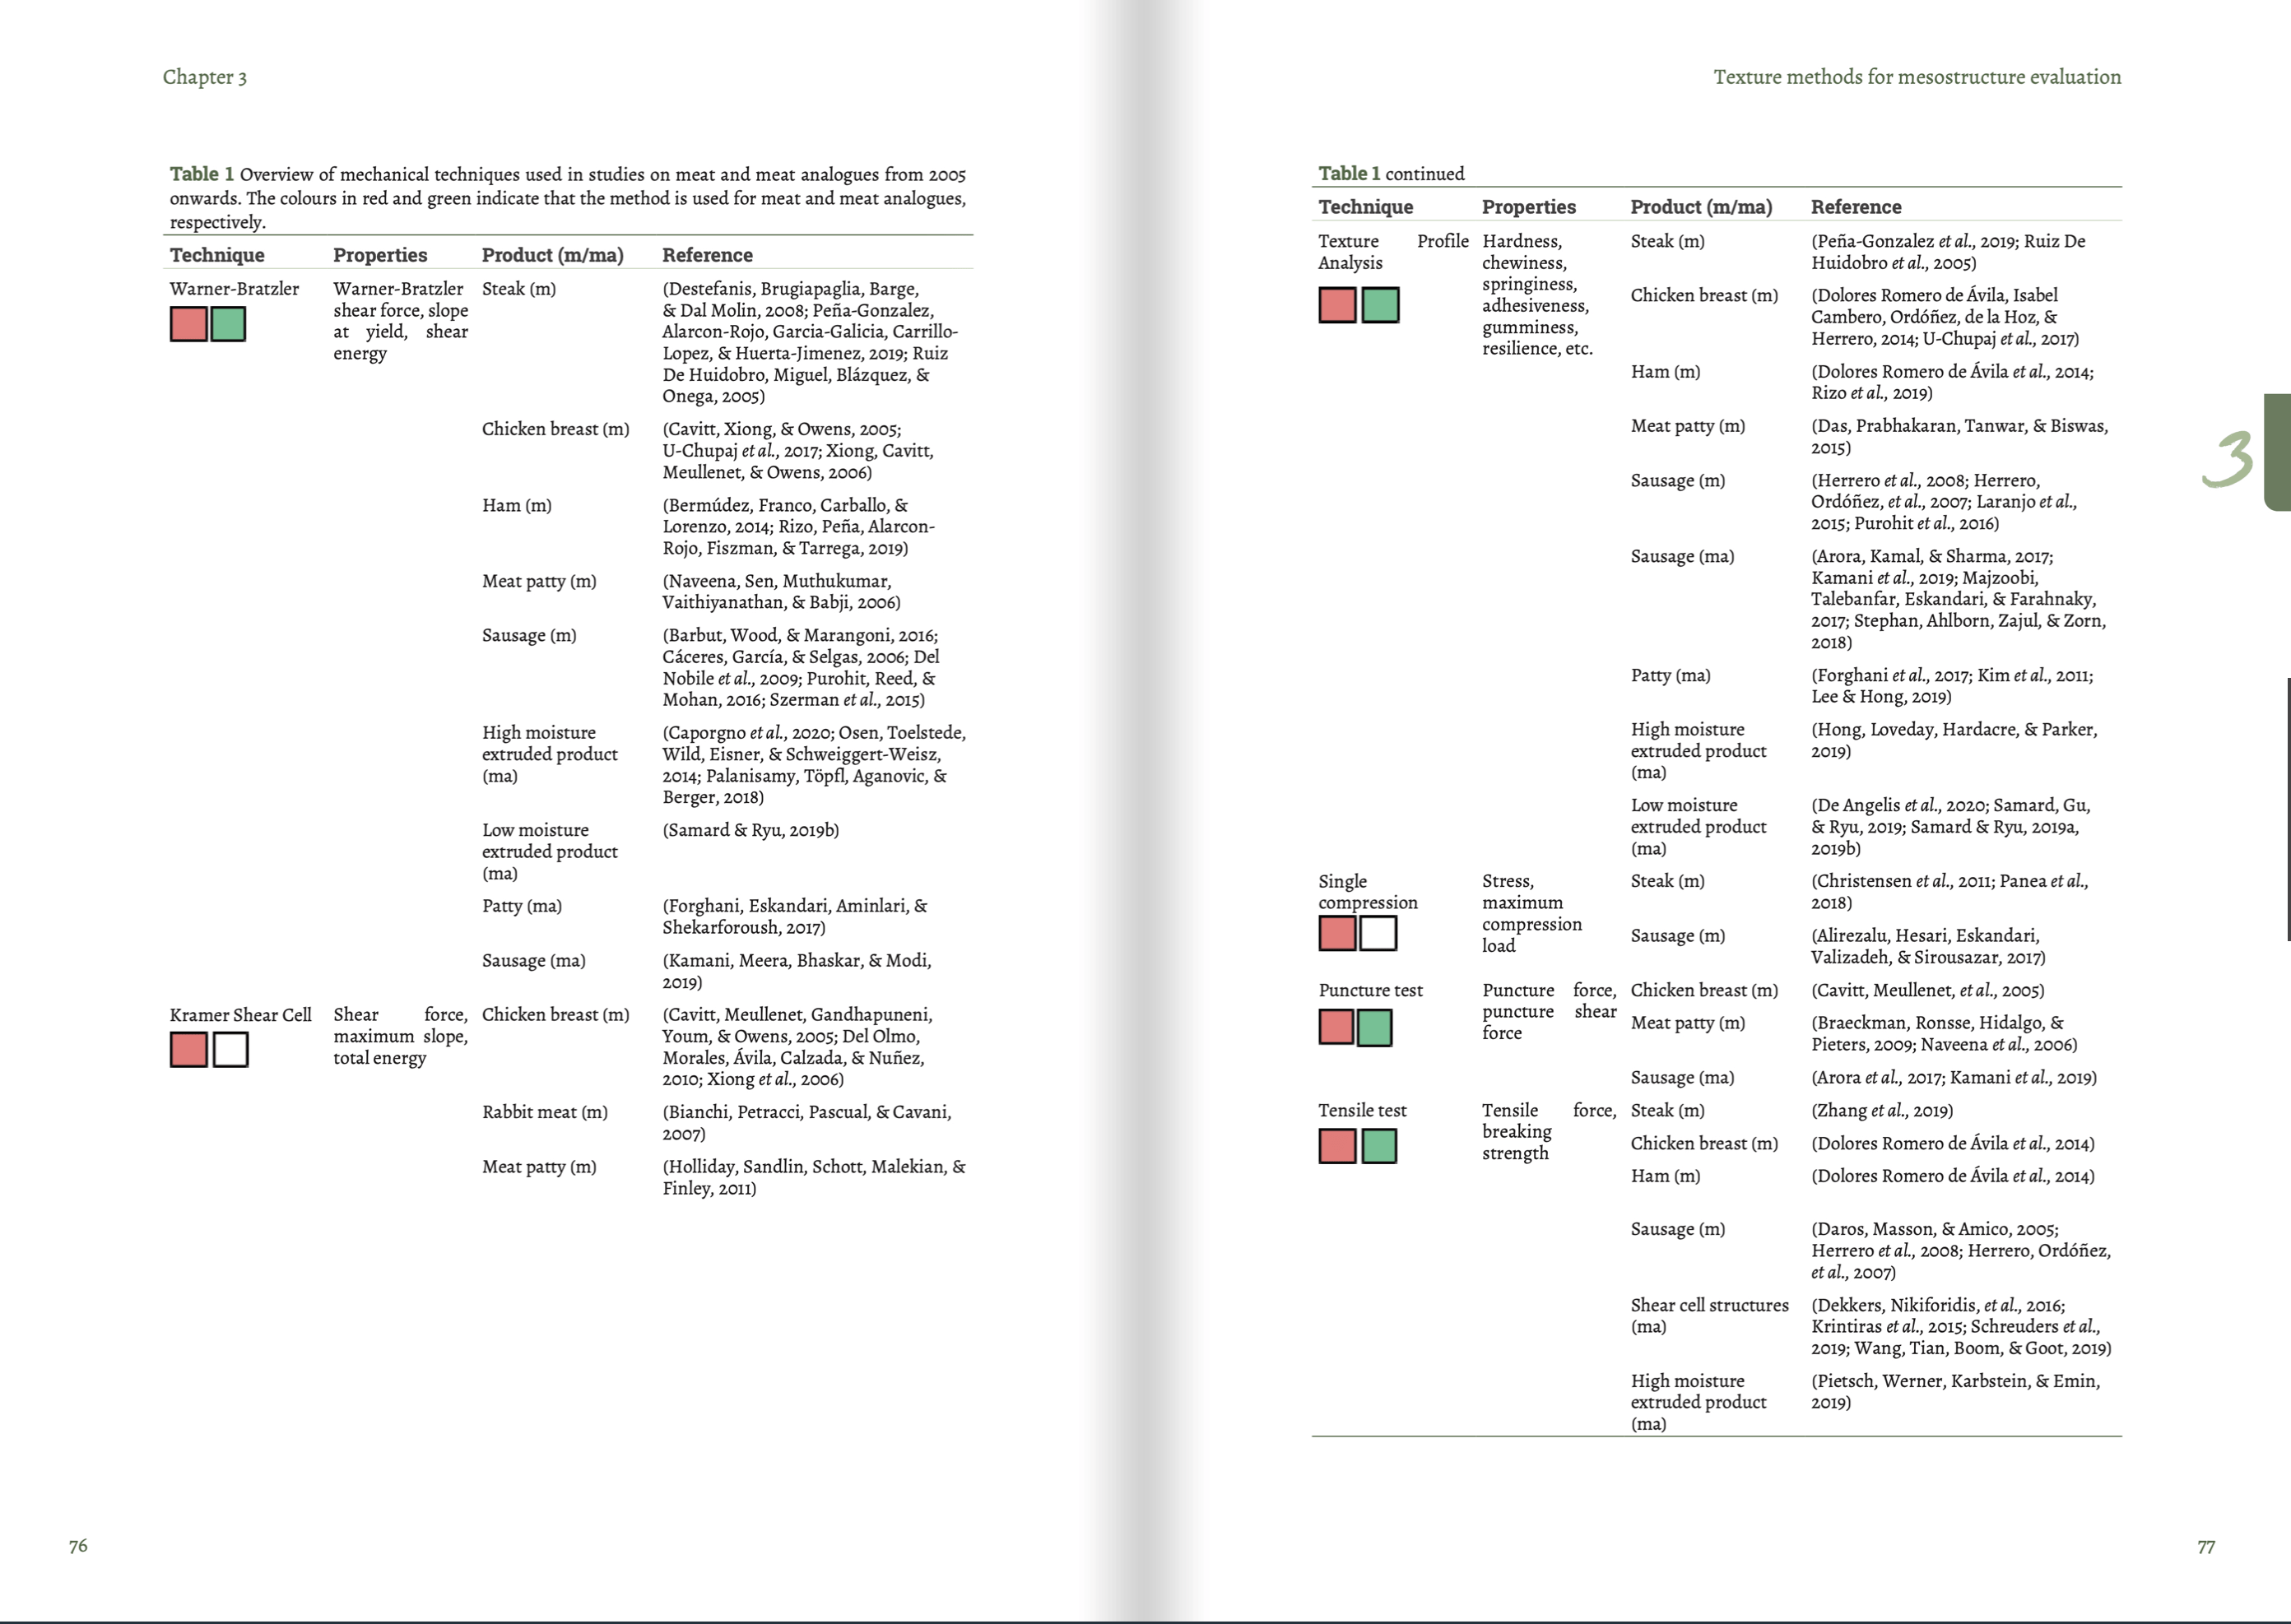 table SCIENTIFIC REVIEWS ON MEAT ANALOGUES AND PLANT-BASED INGREDIENTS